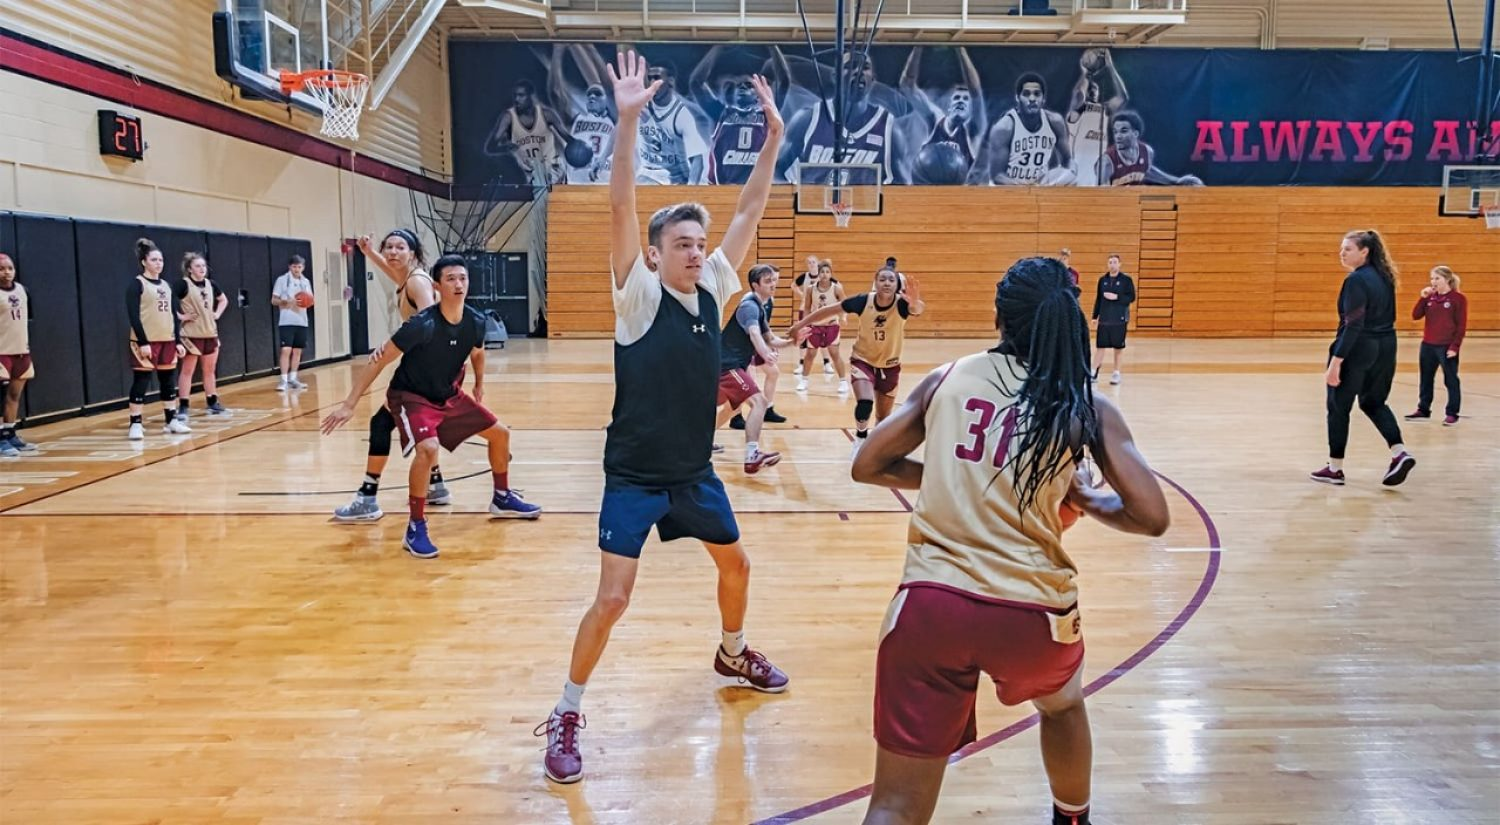 Women's basketball team works out with scout team